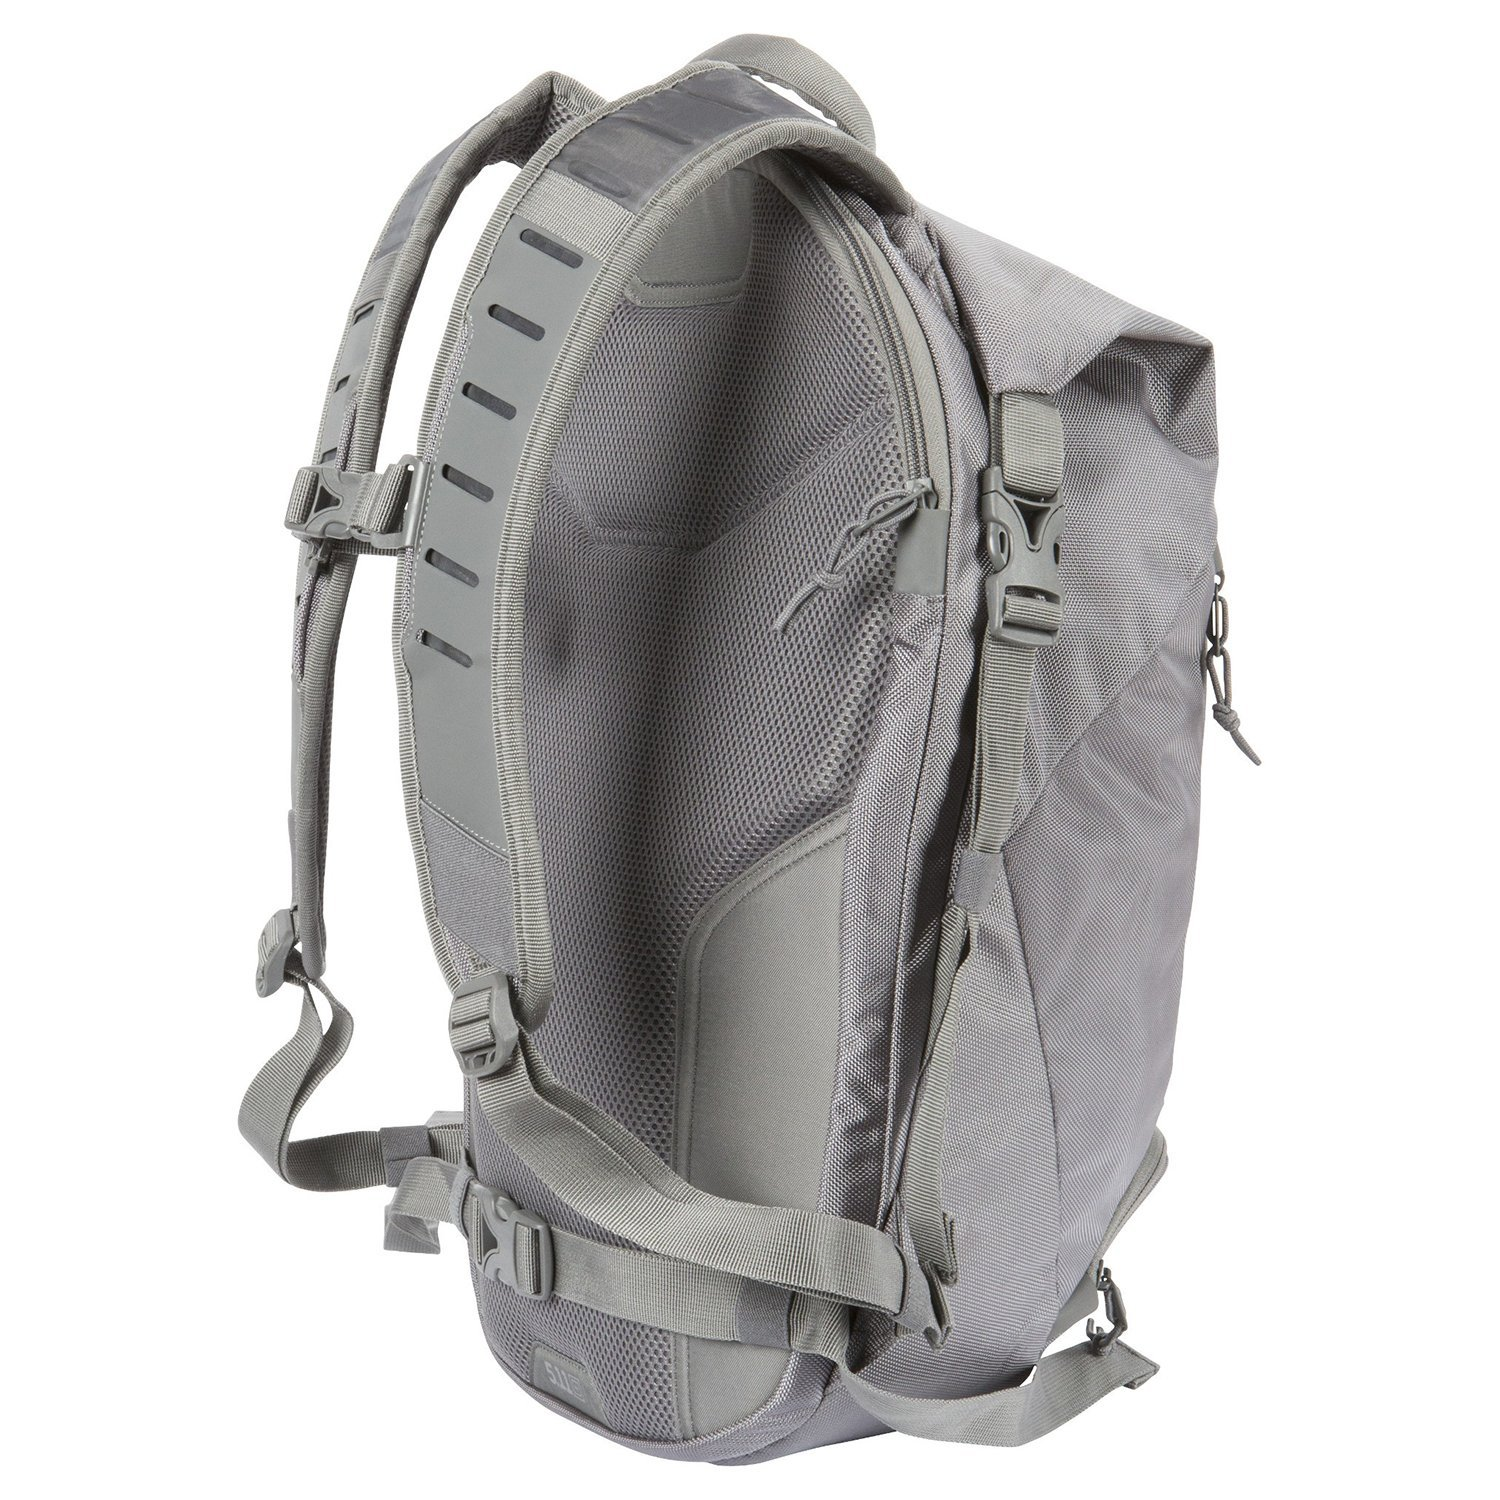 32L 5.11 Tactical Covert Boxpack 1680D Ballistic Polyester Water Resistant Finish Style 56284